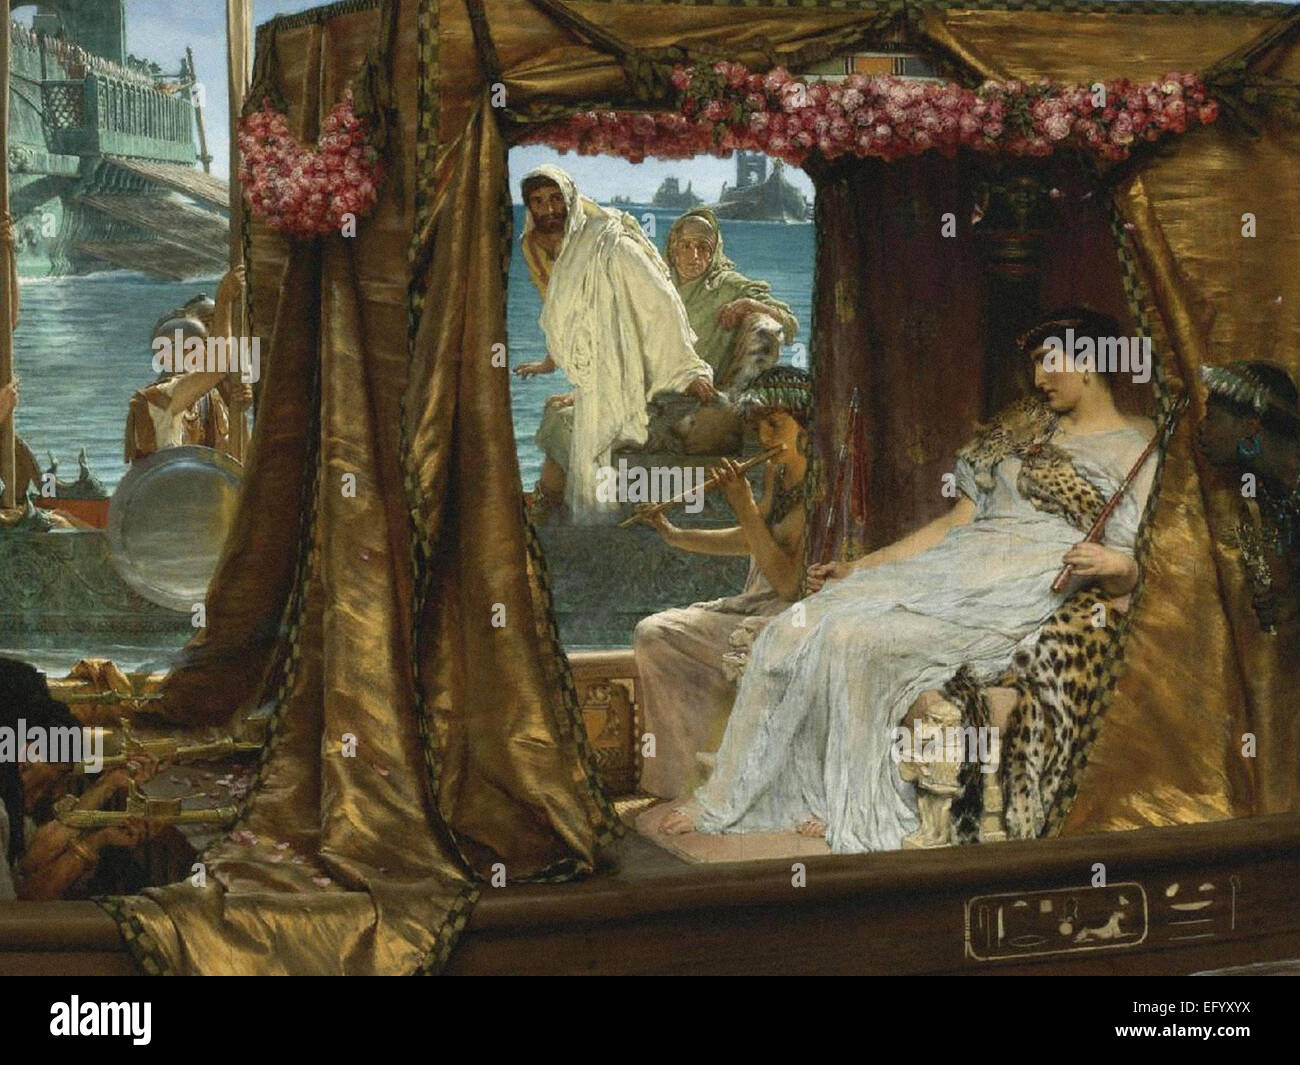 Lawrence Alma-Tadema  The Meeting of Anthony and Cleopatra - Stock Image